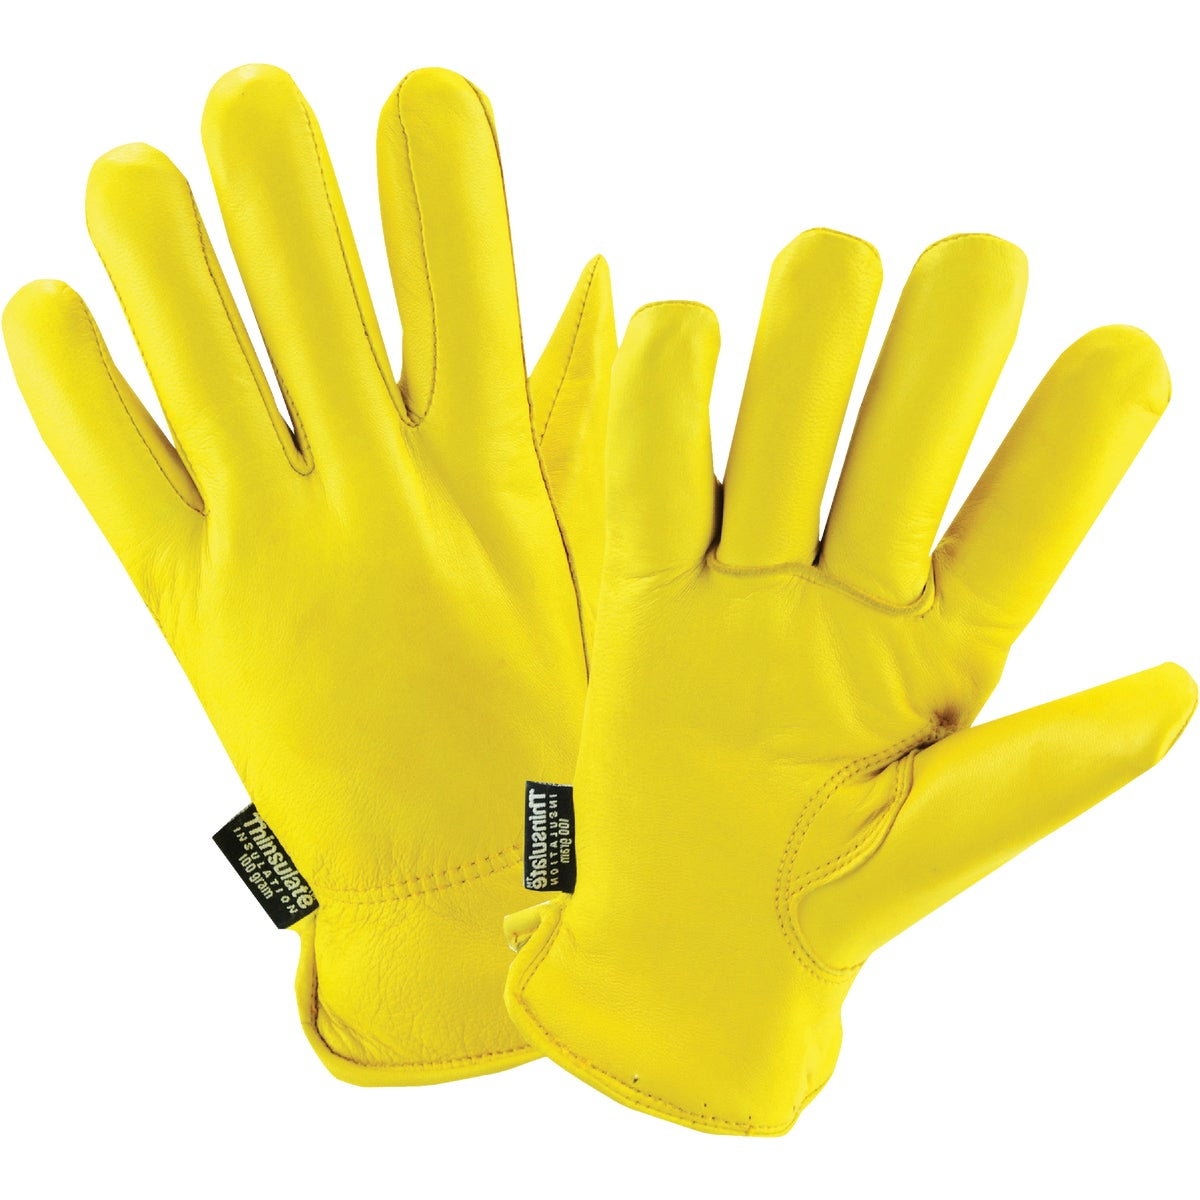 LRG THERMOFILL DS GLOVE - 963L by Wells Lamont